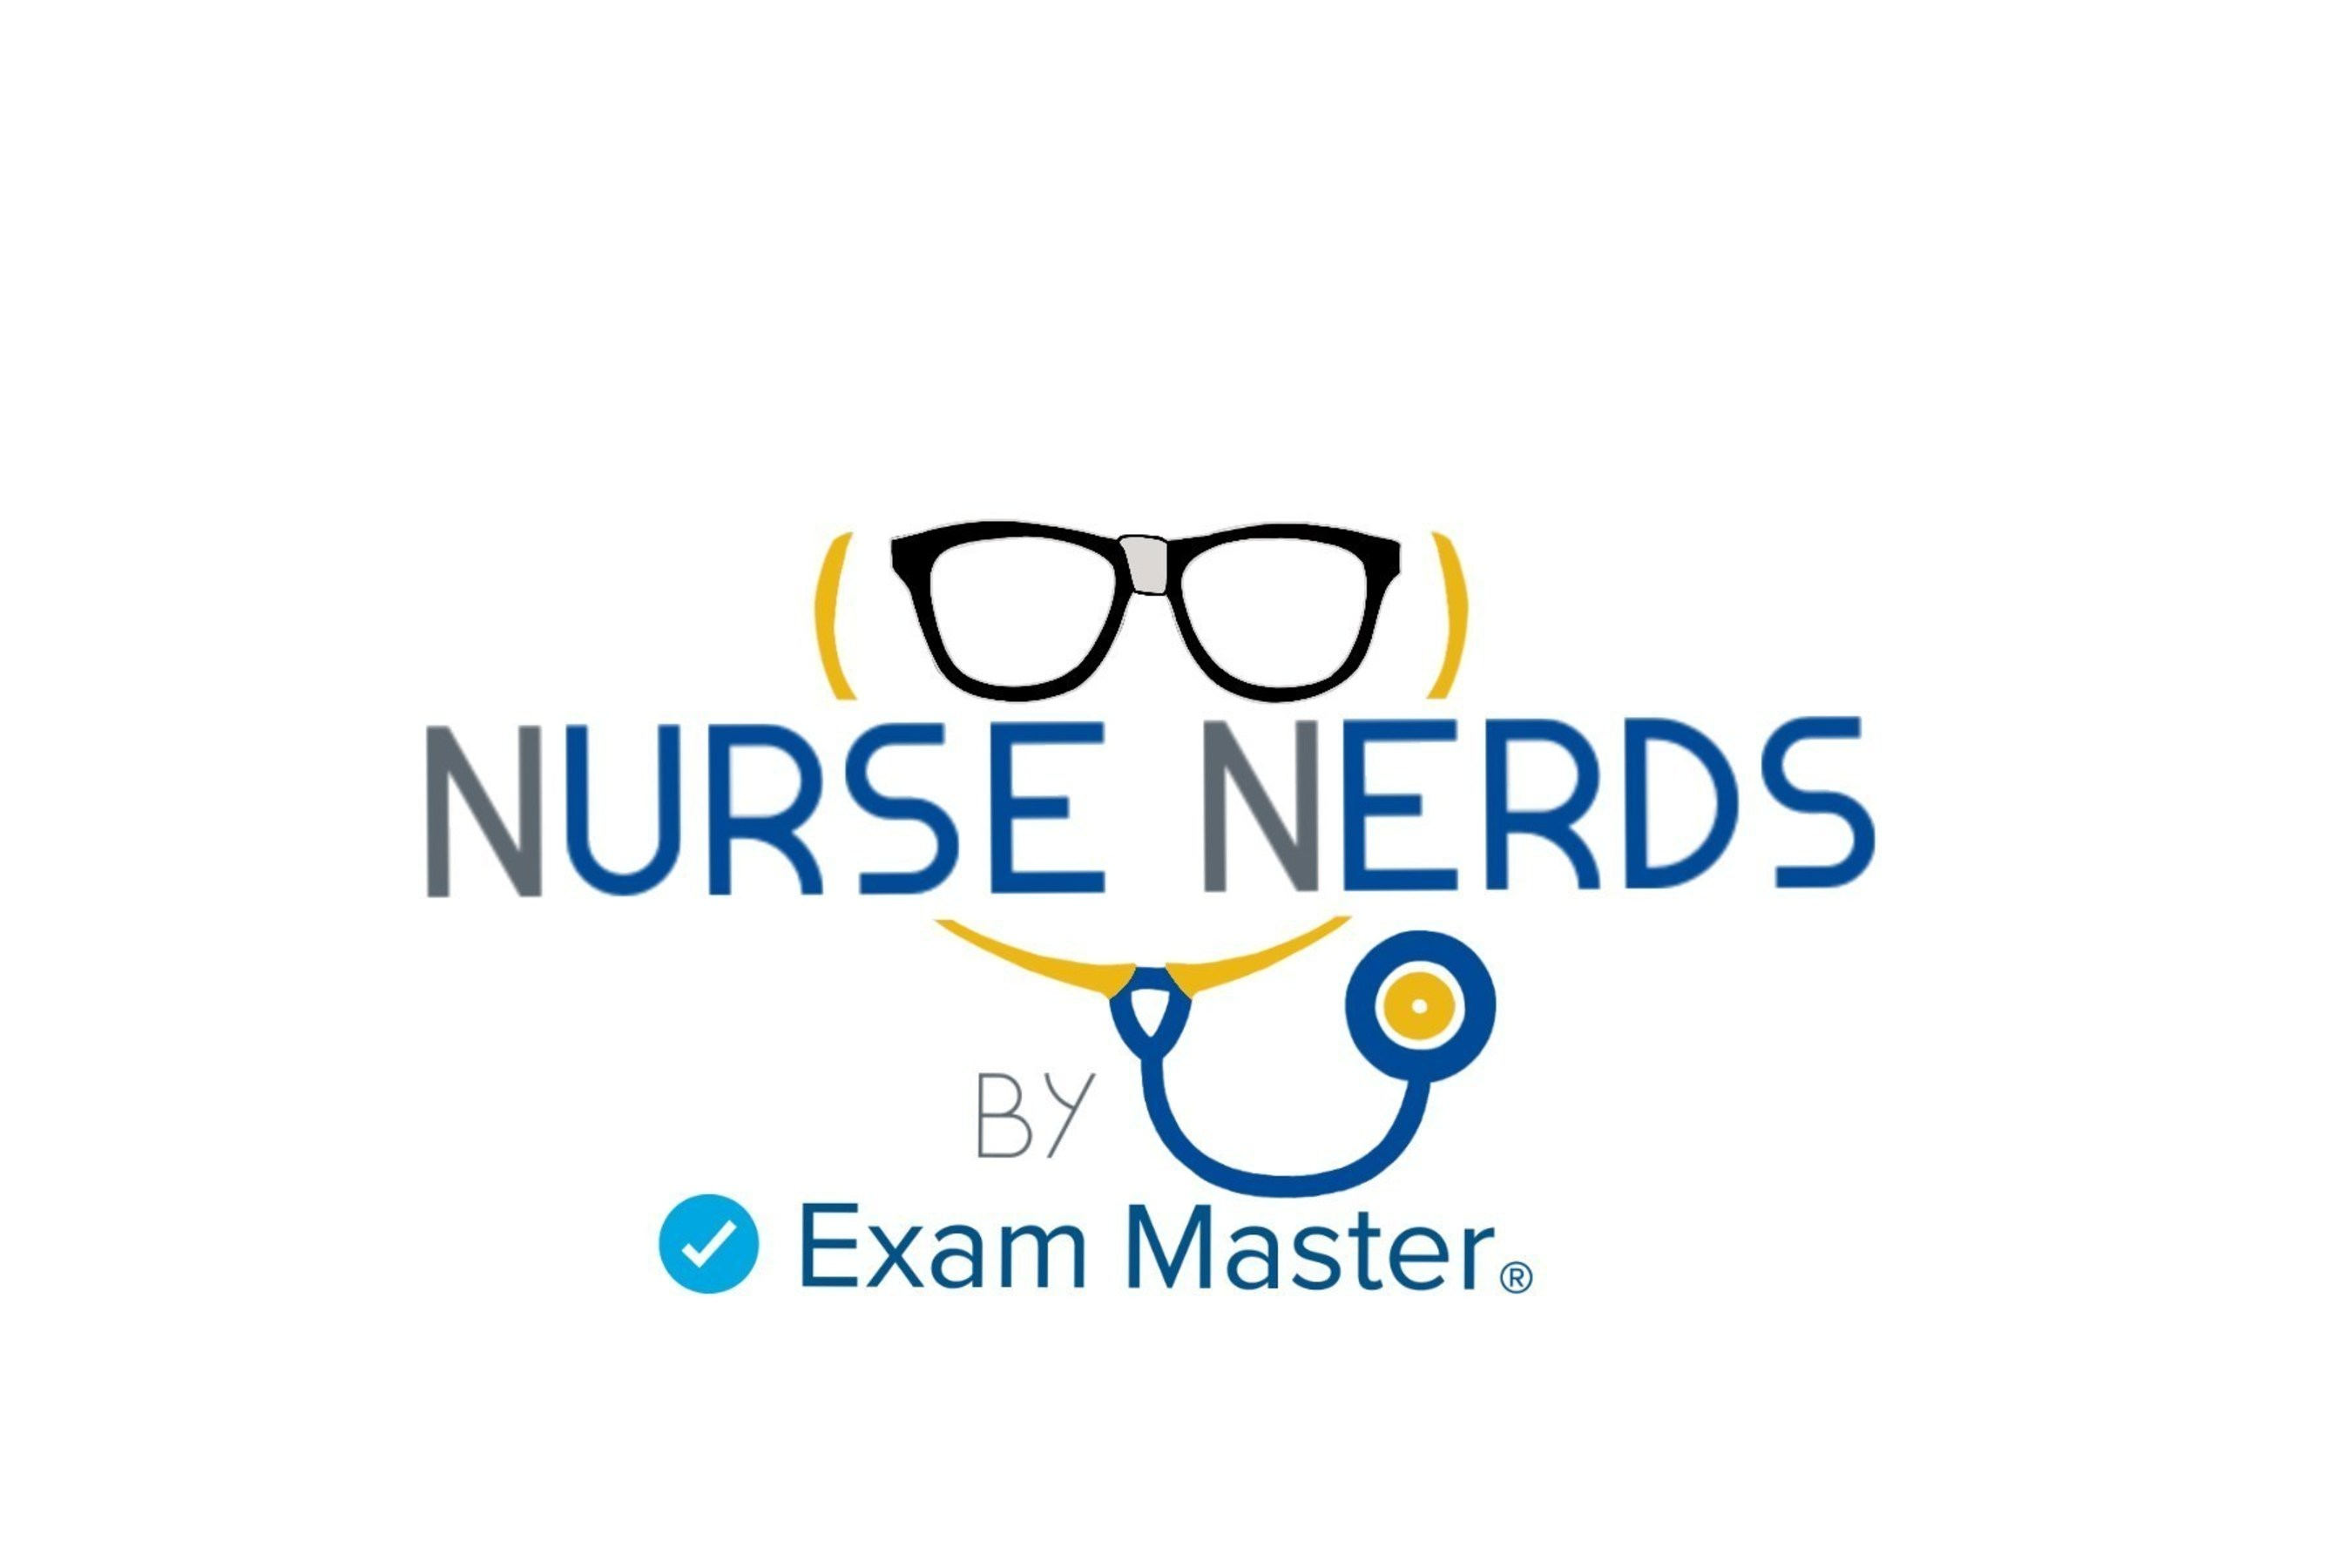 exam master launches nurse nerds a nursing test prep company